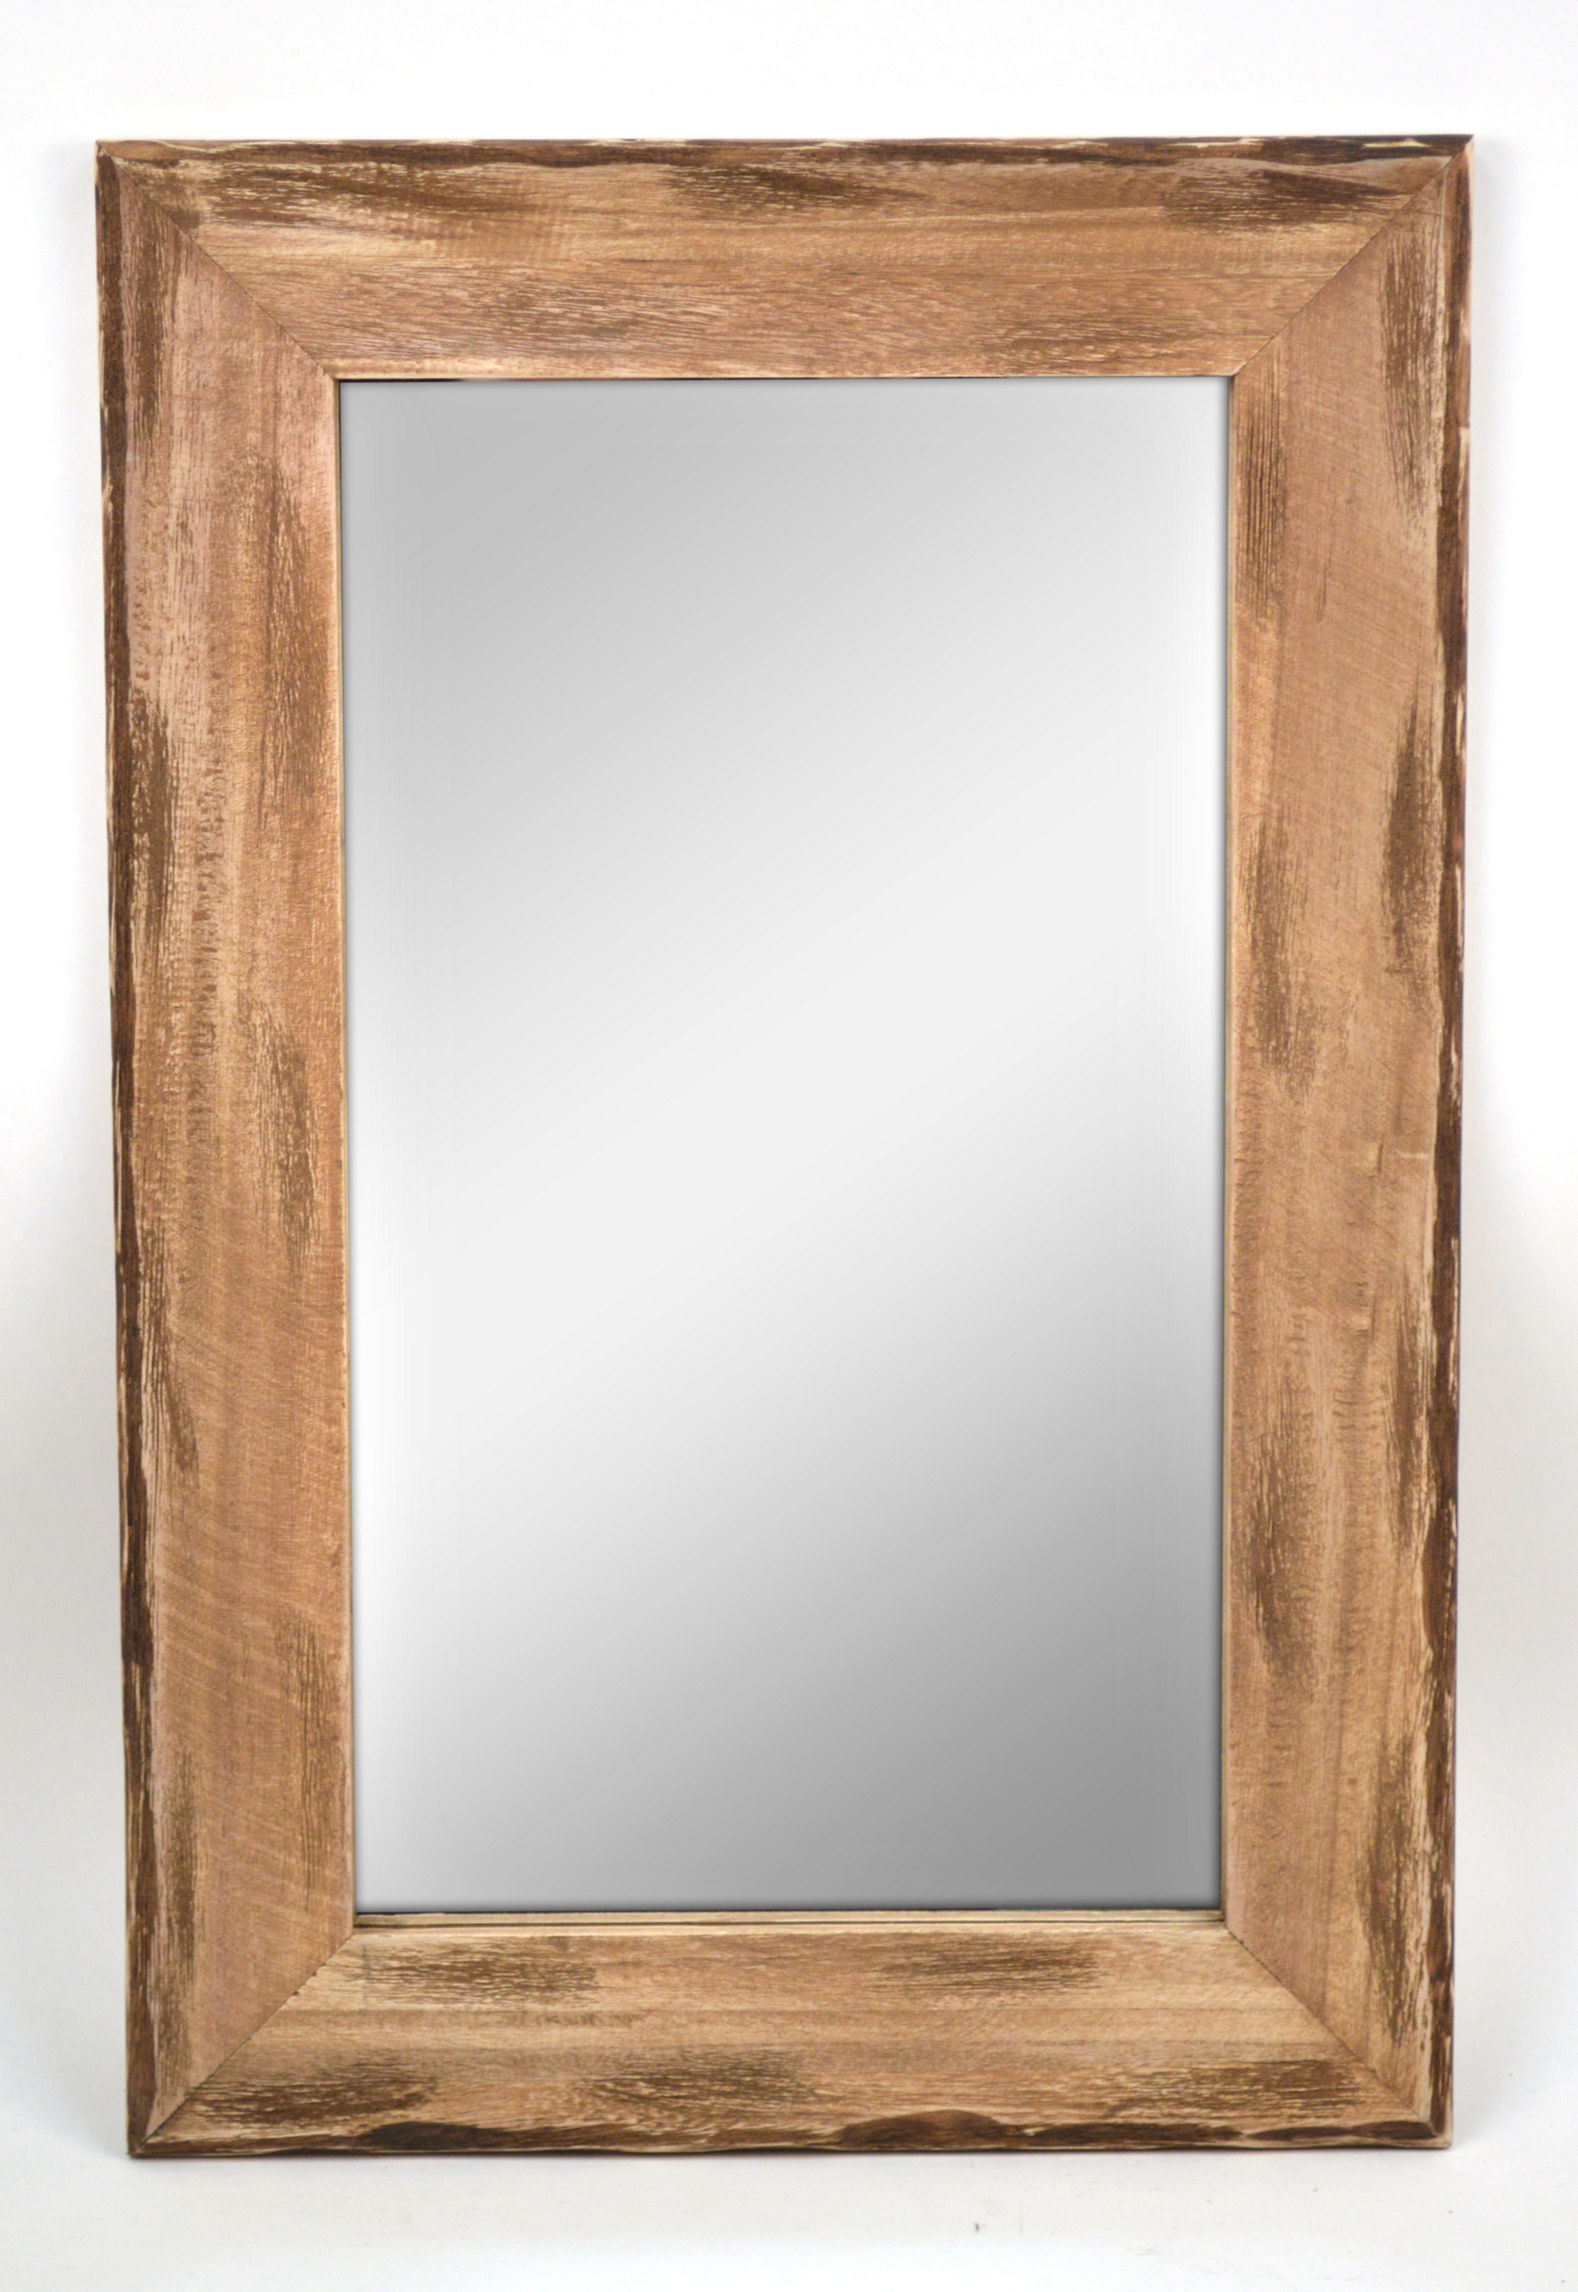 Concepts in Time Wood Mirrors Wall Decor